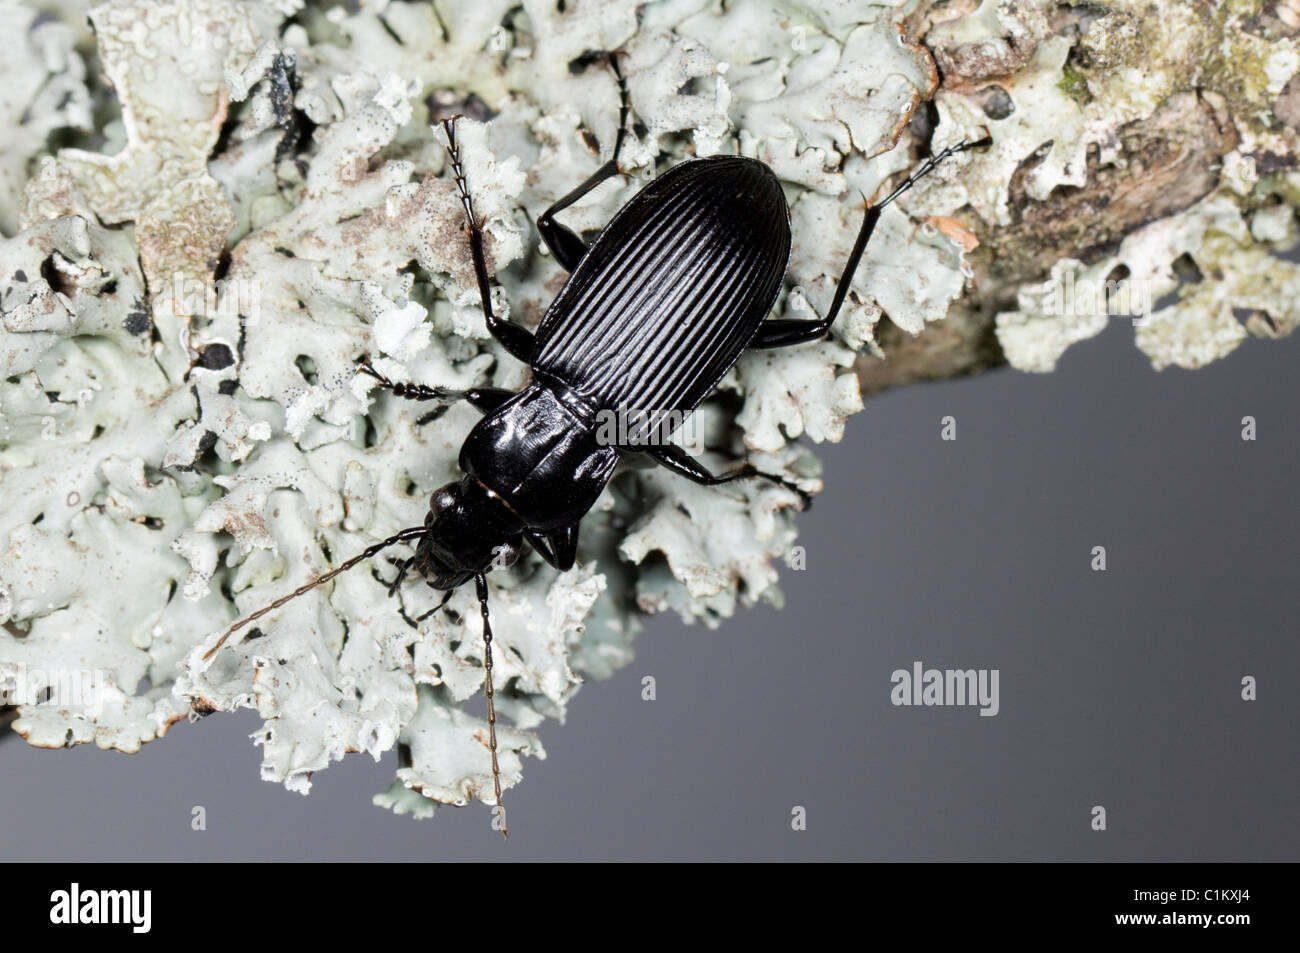 Ground Beetle (Pterostichus niger) on lichen, UK - Stock Image